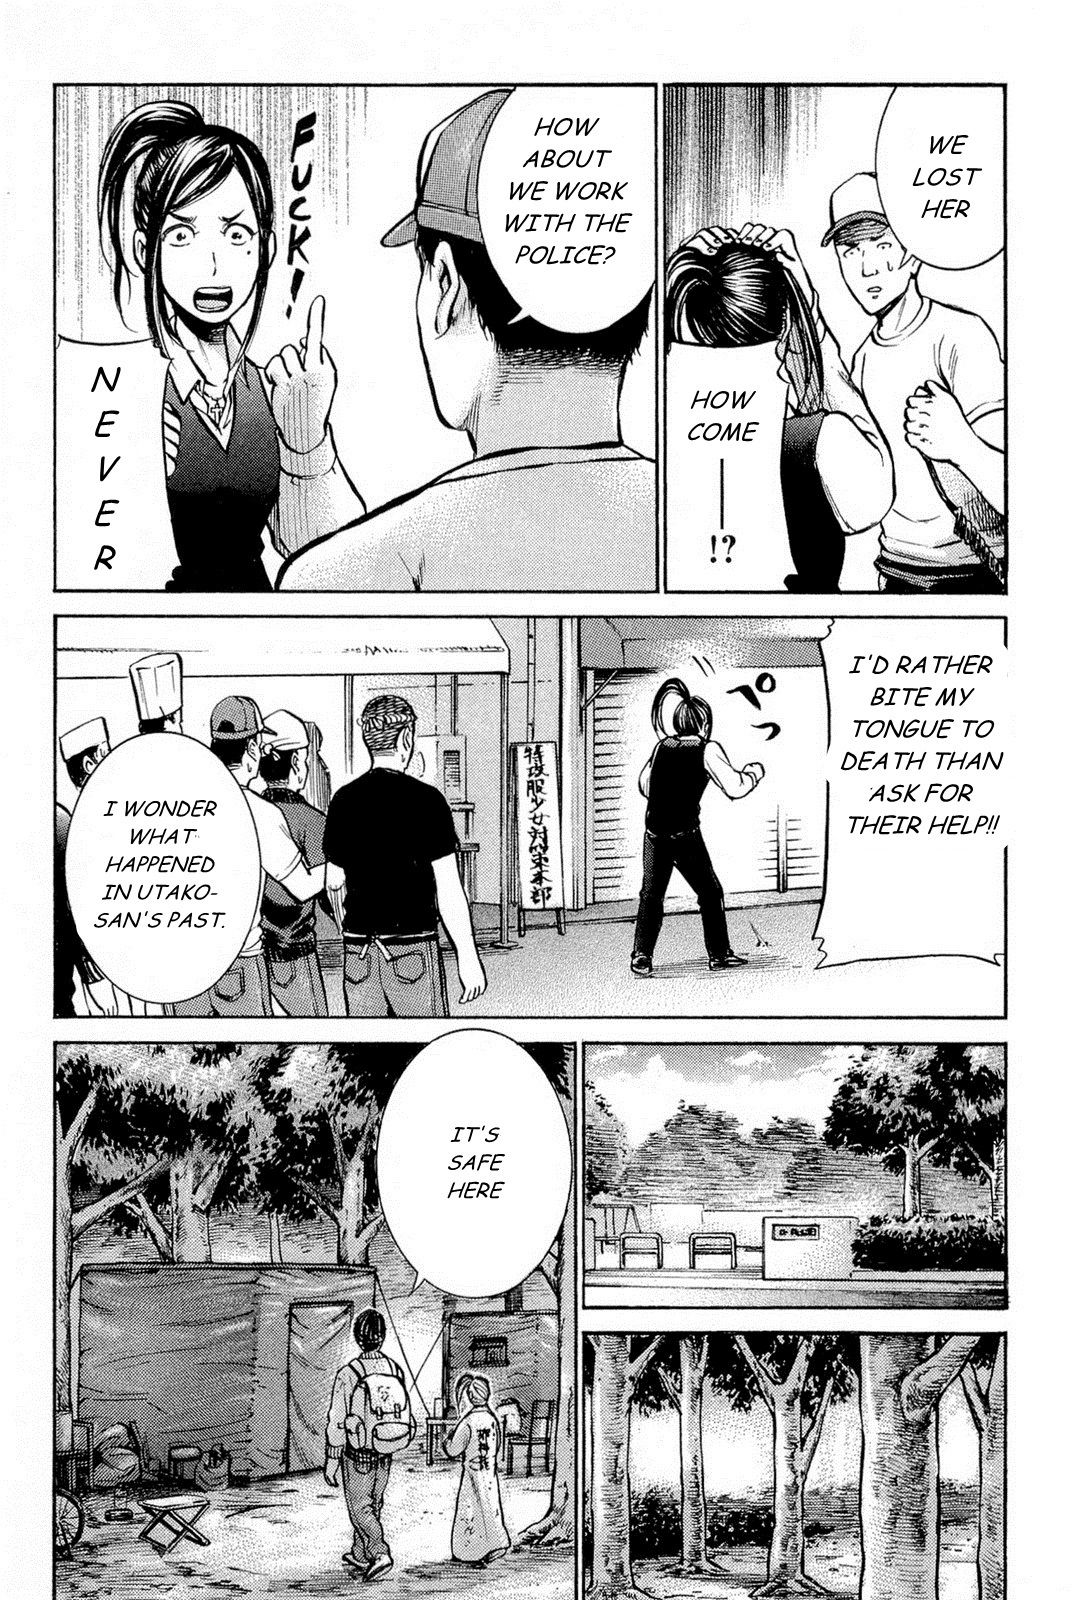 Read Manga Hinamatsuri 007 A Beginner S Guide To A Homeless Life Online In High Quality Manga To Read Life